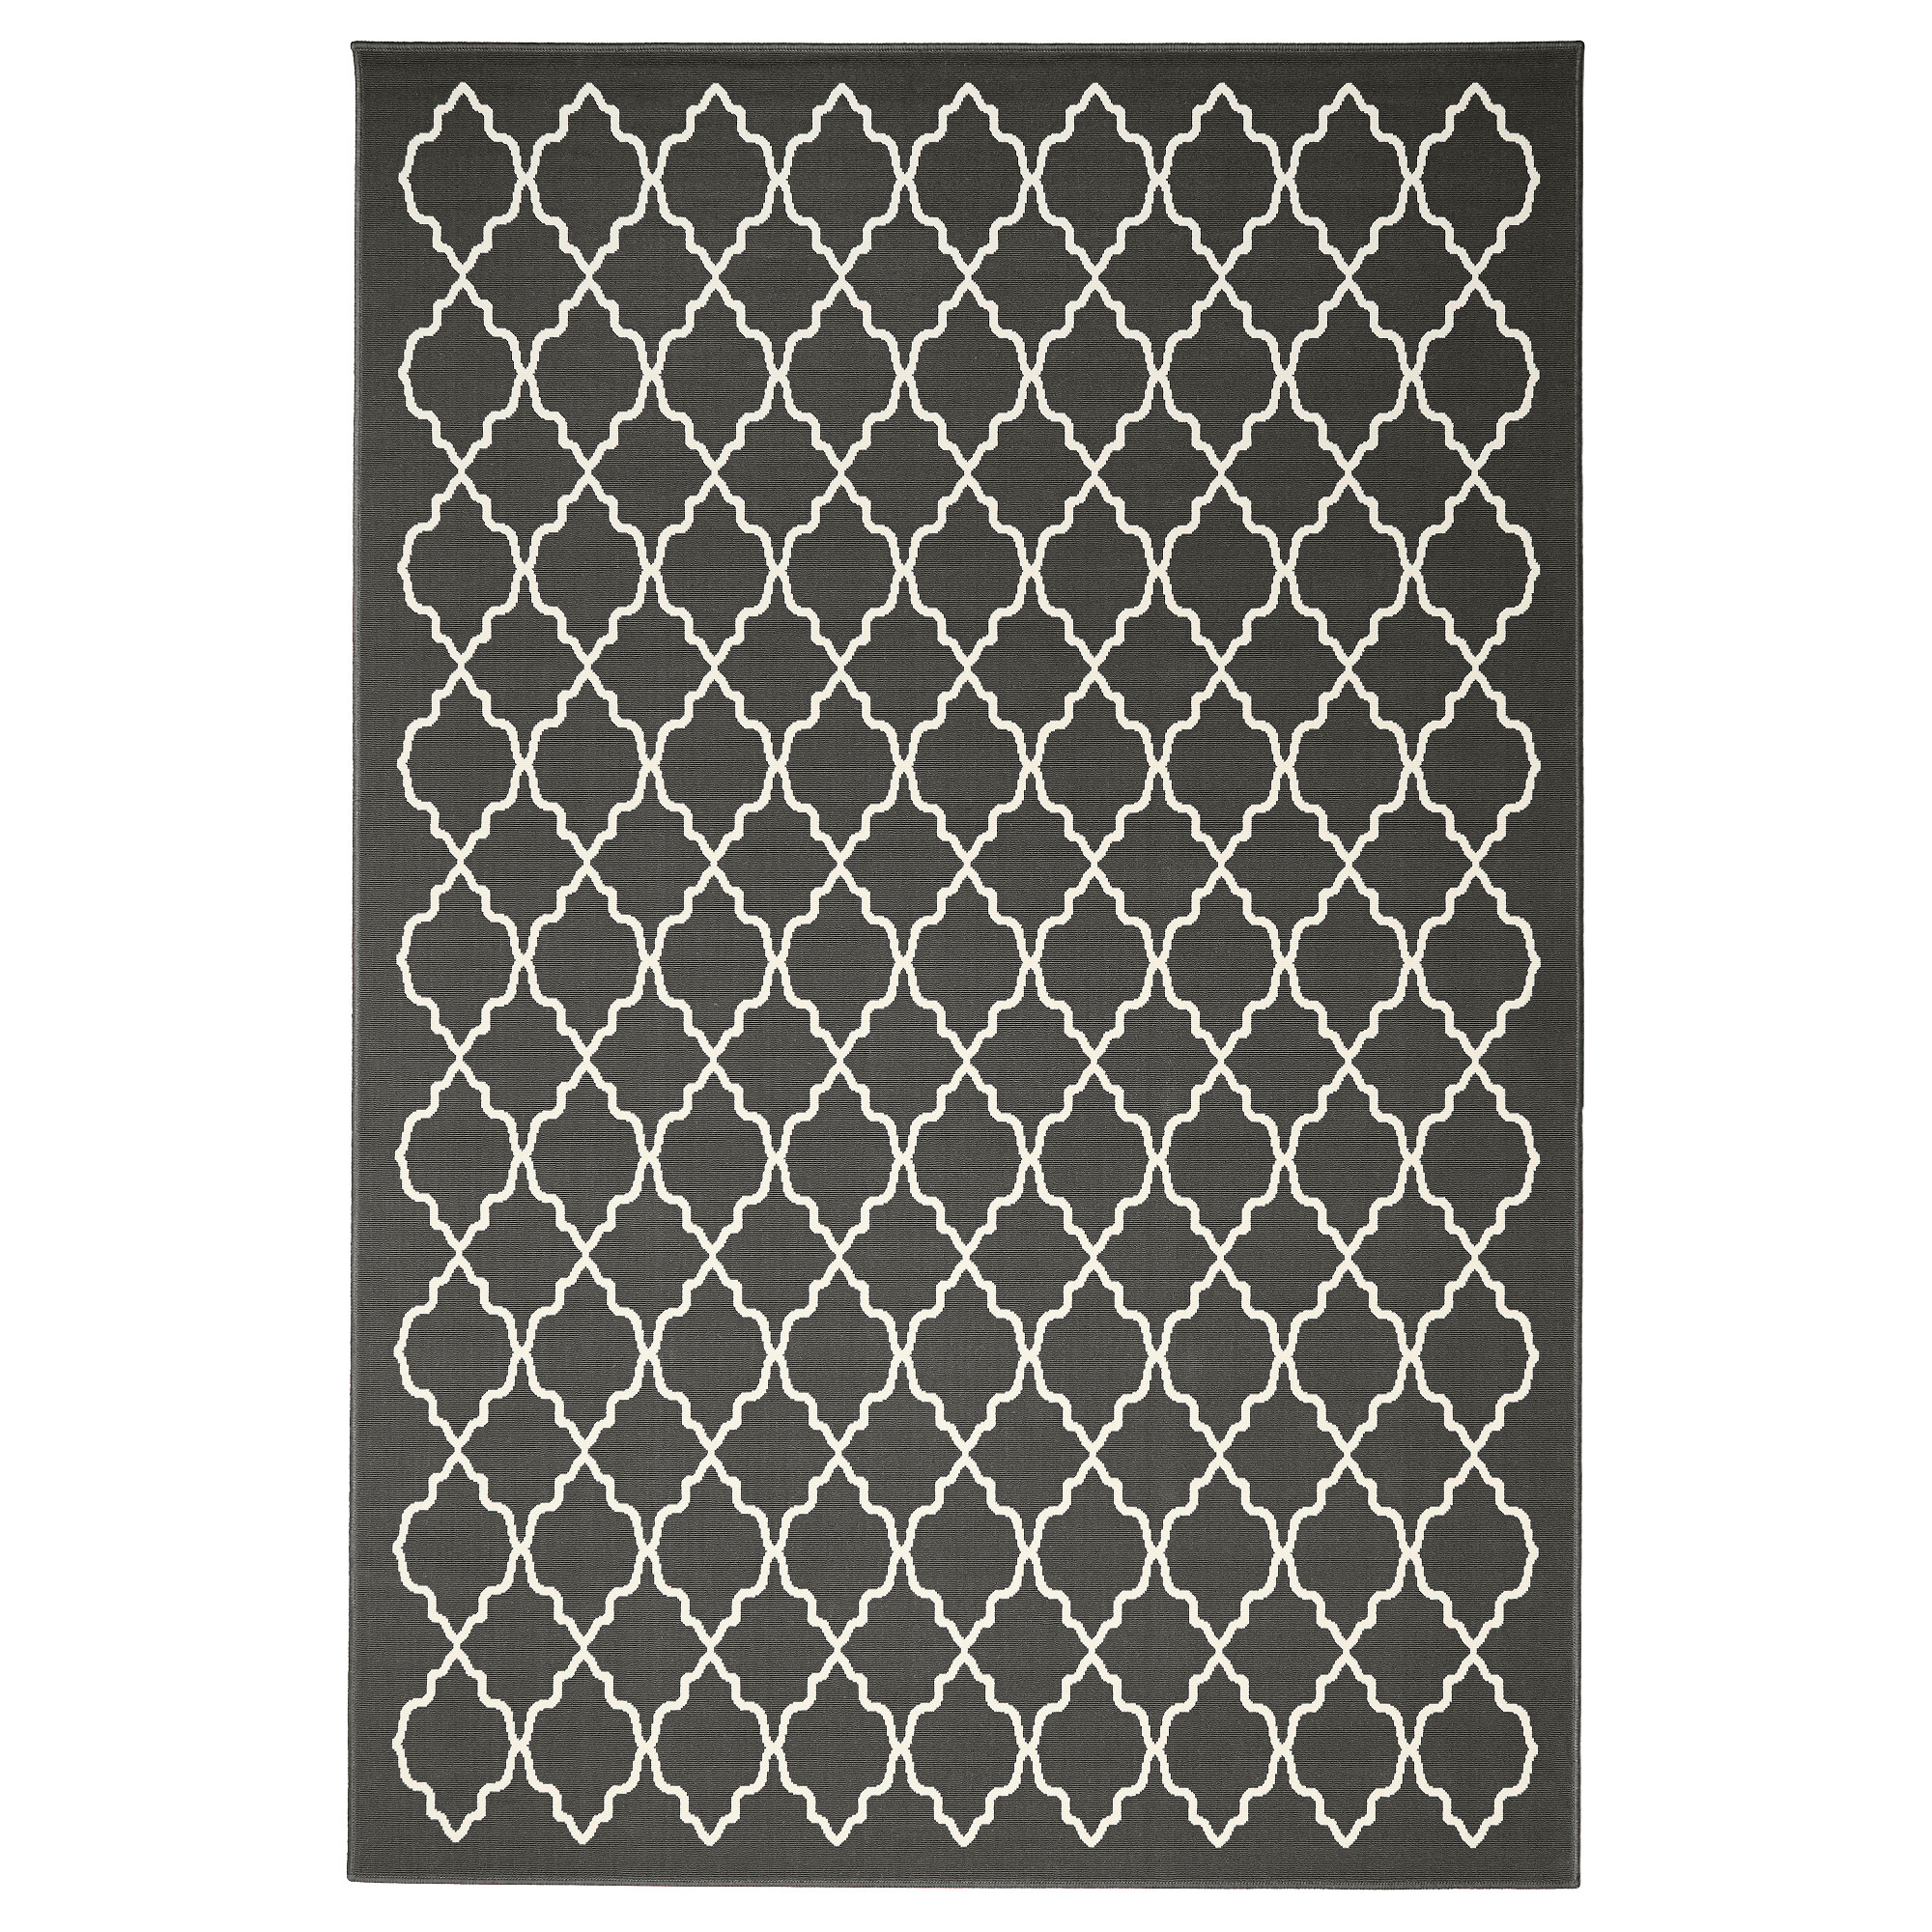 carrelage design tapis pas cher ikea moderne design pour carrelage de sol et rev tement de tapis. Black Bedroom Furniture Sets. Home Design Ideas